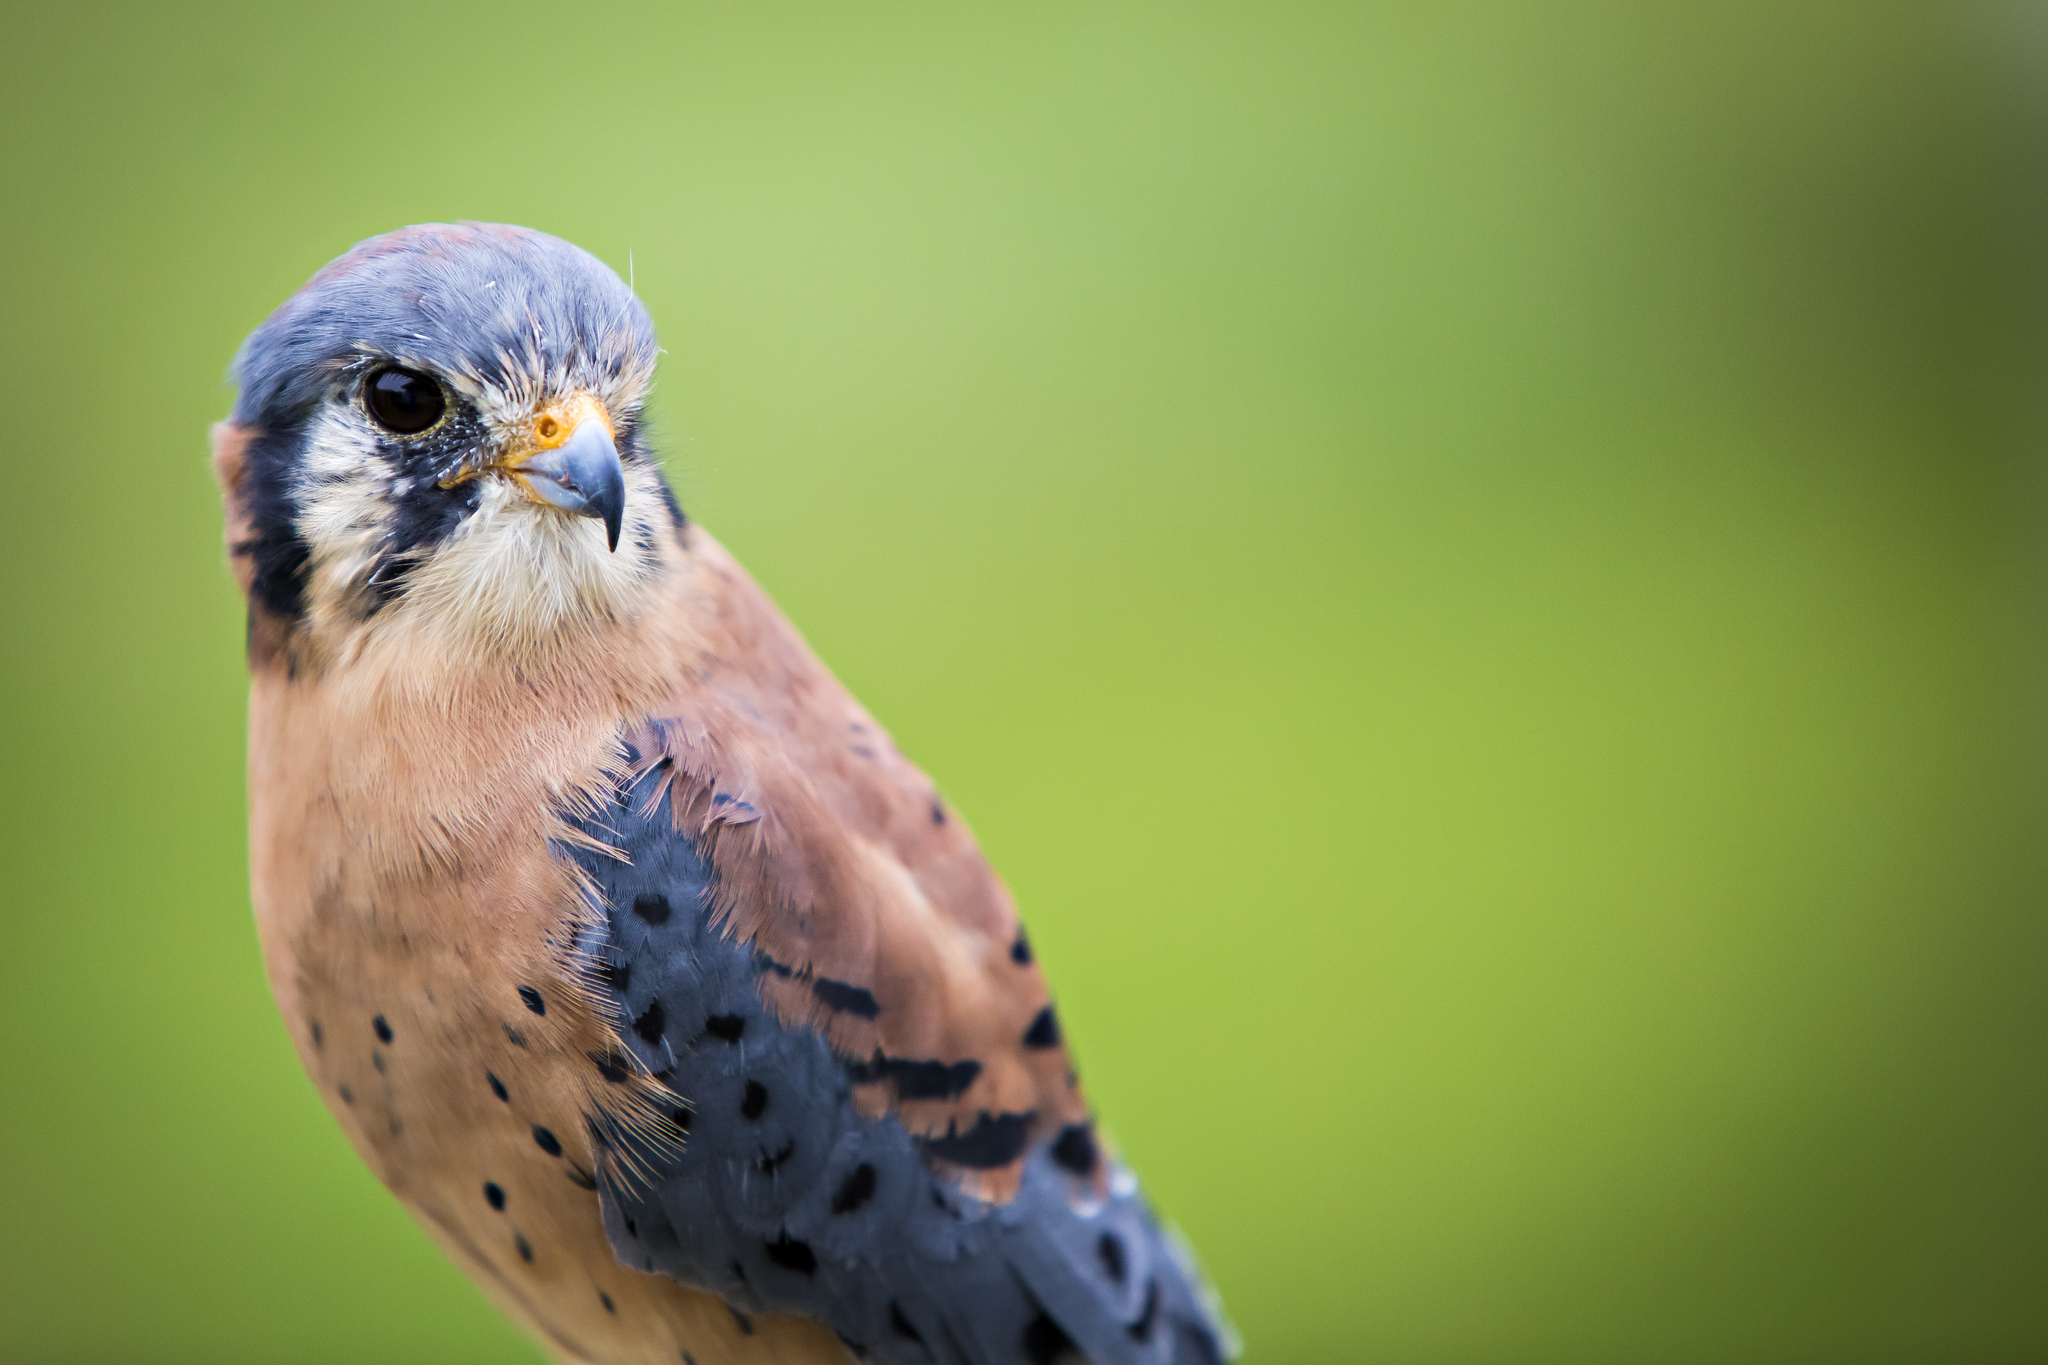 Hephaestus the American Kestrel at the Raptor Rehabilitation Project on the MU Campu